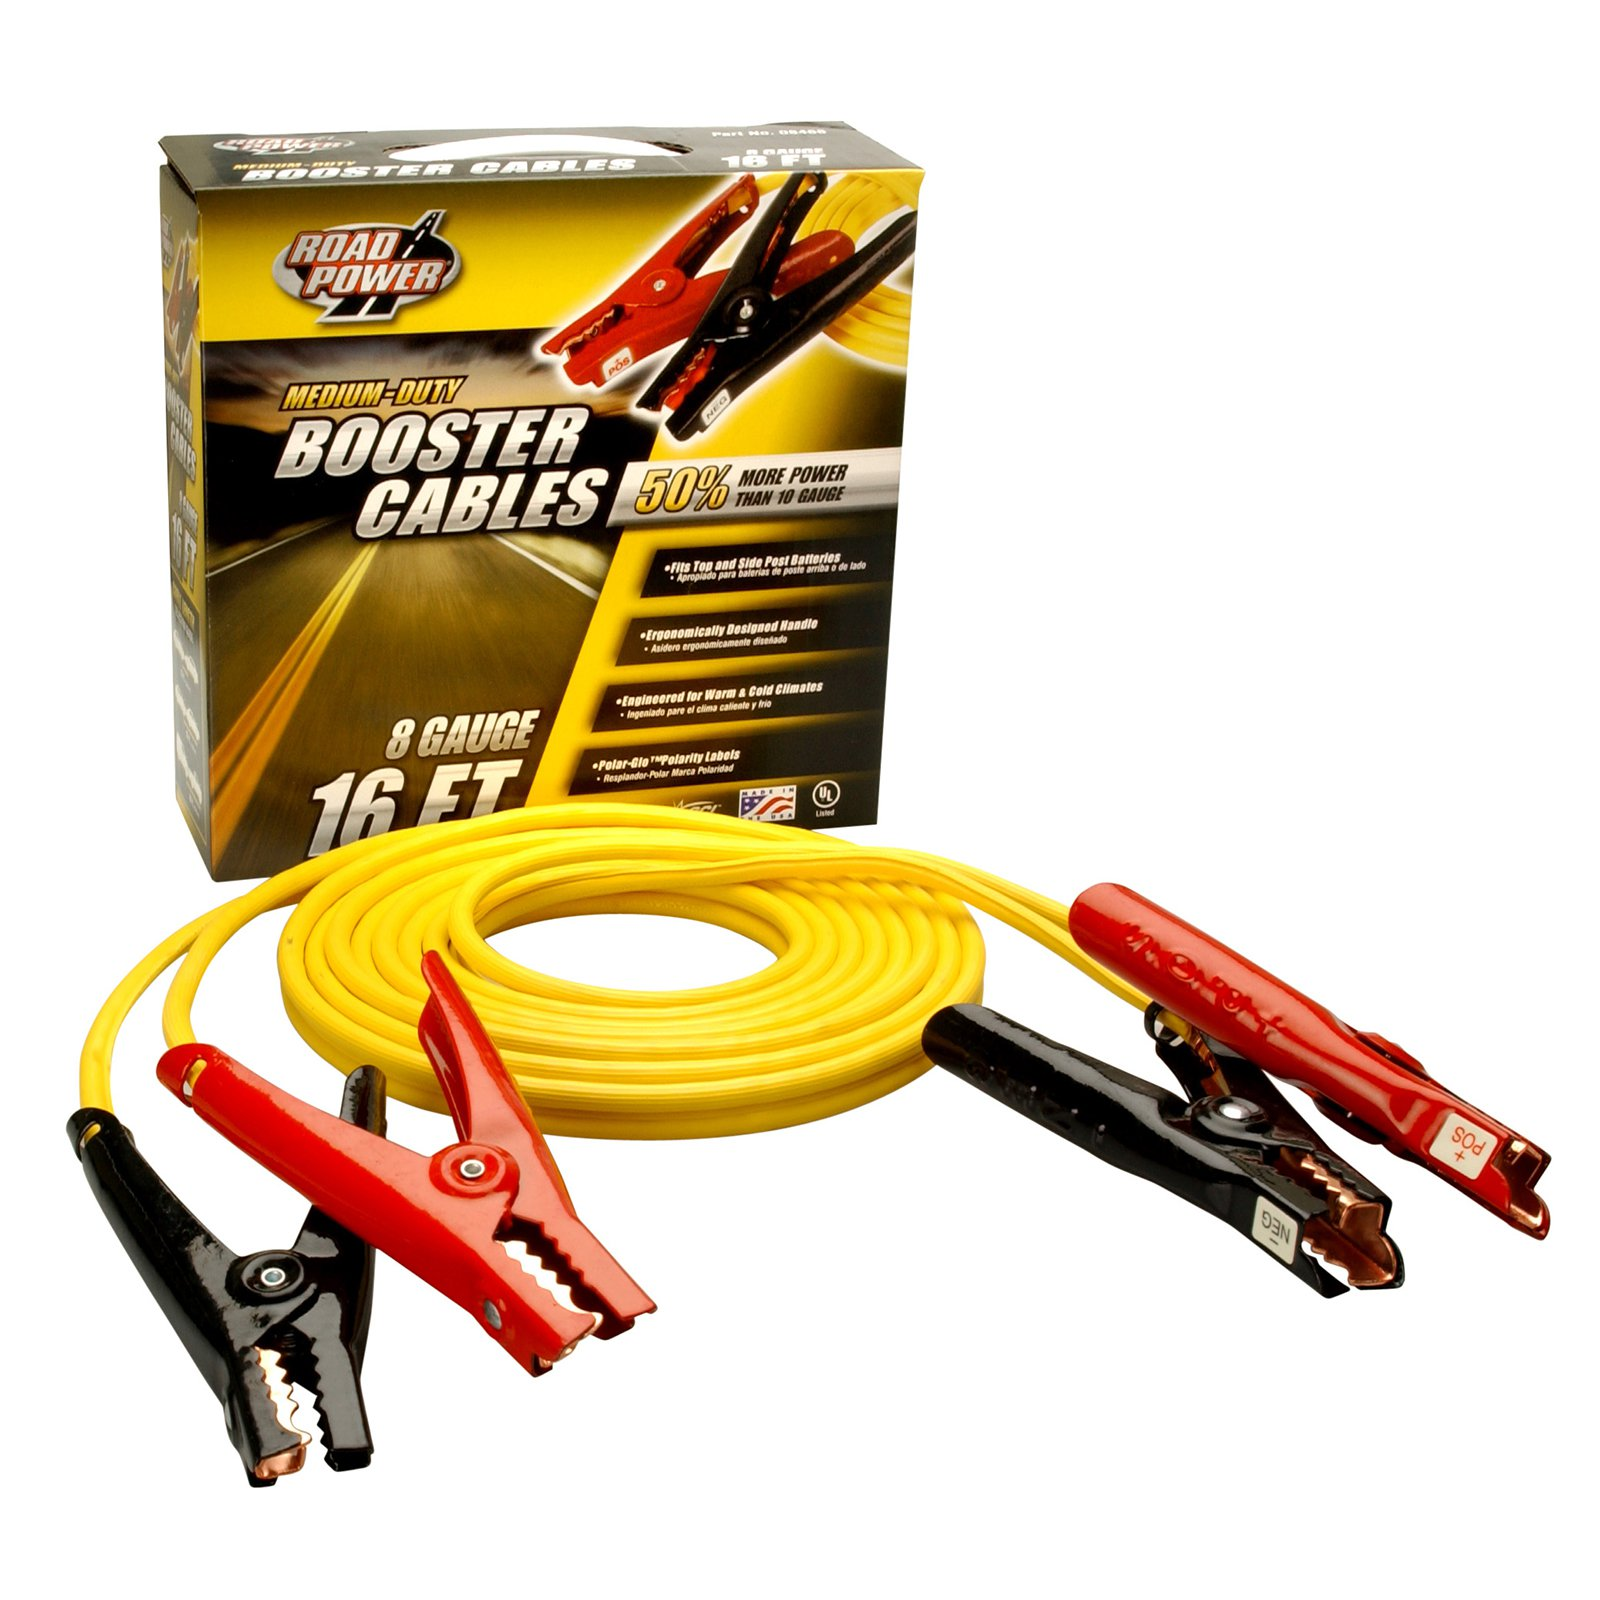 Coleman Cable 08466 16' Medium-Duty Booster Cables, 8-Gauge